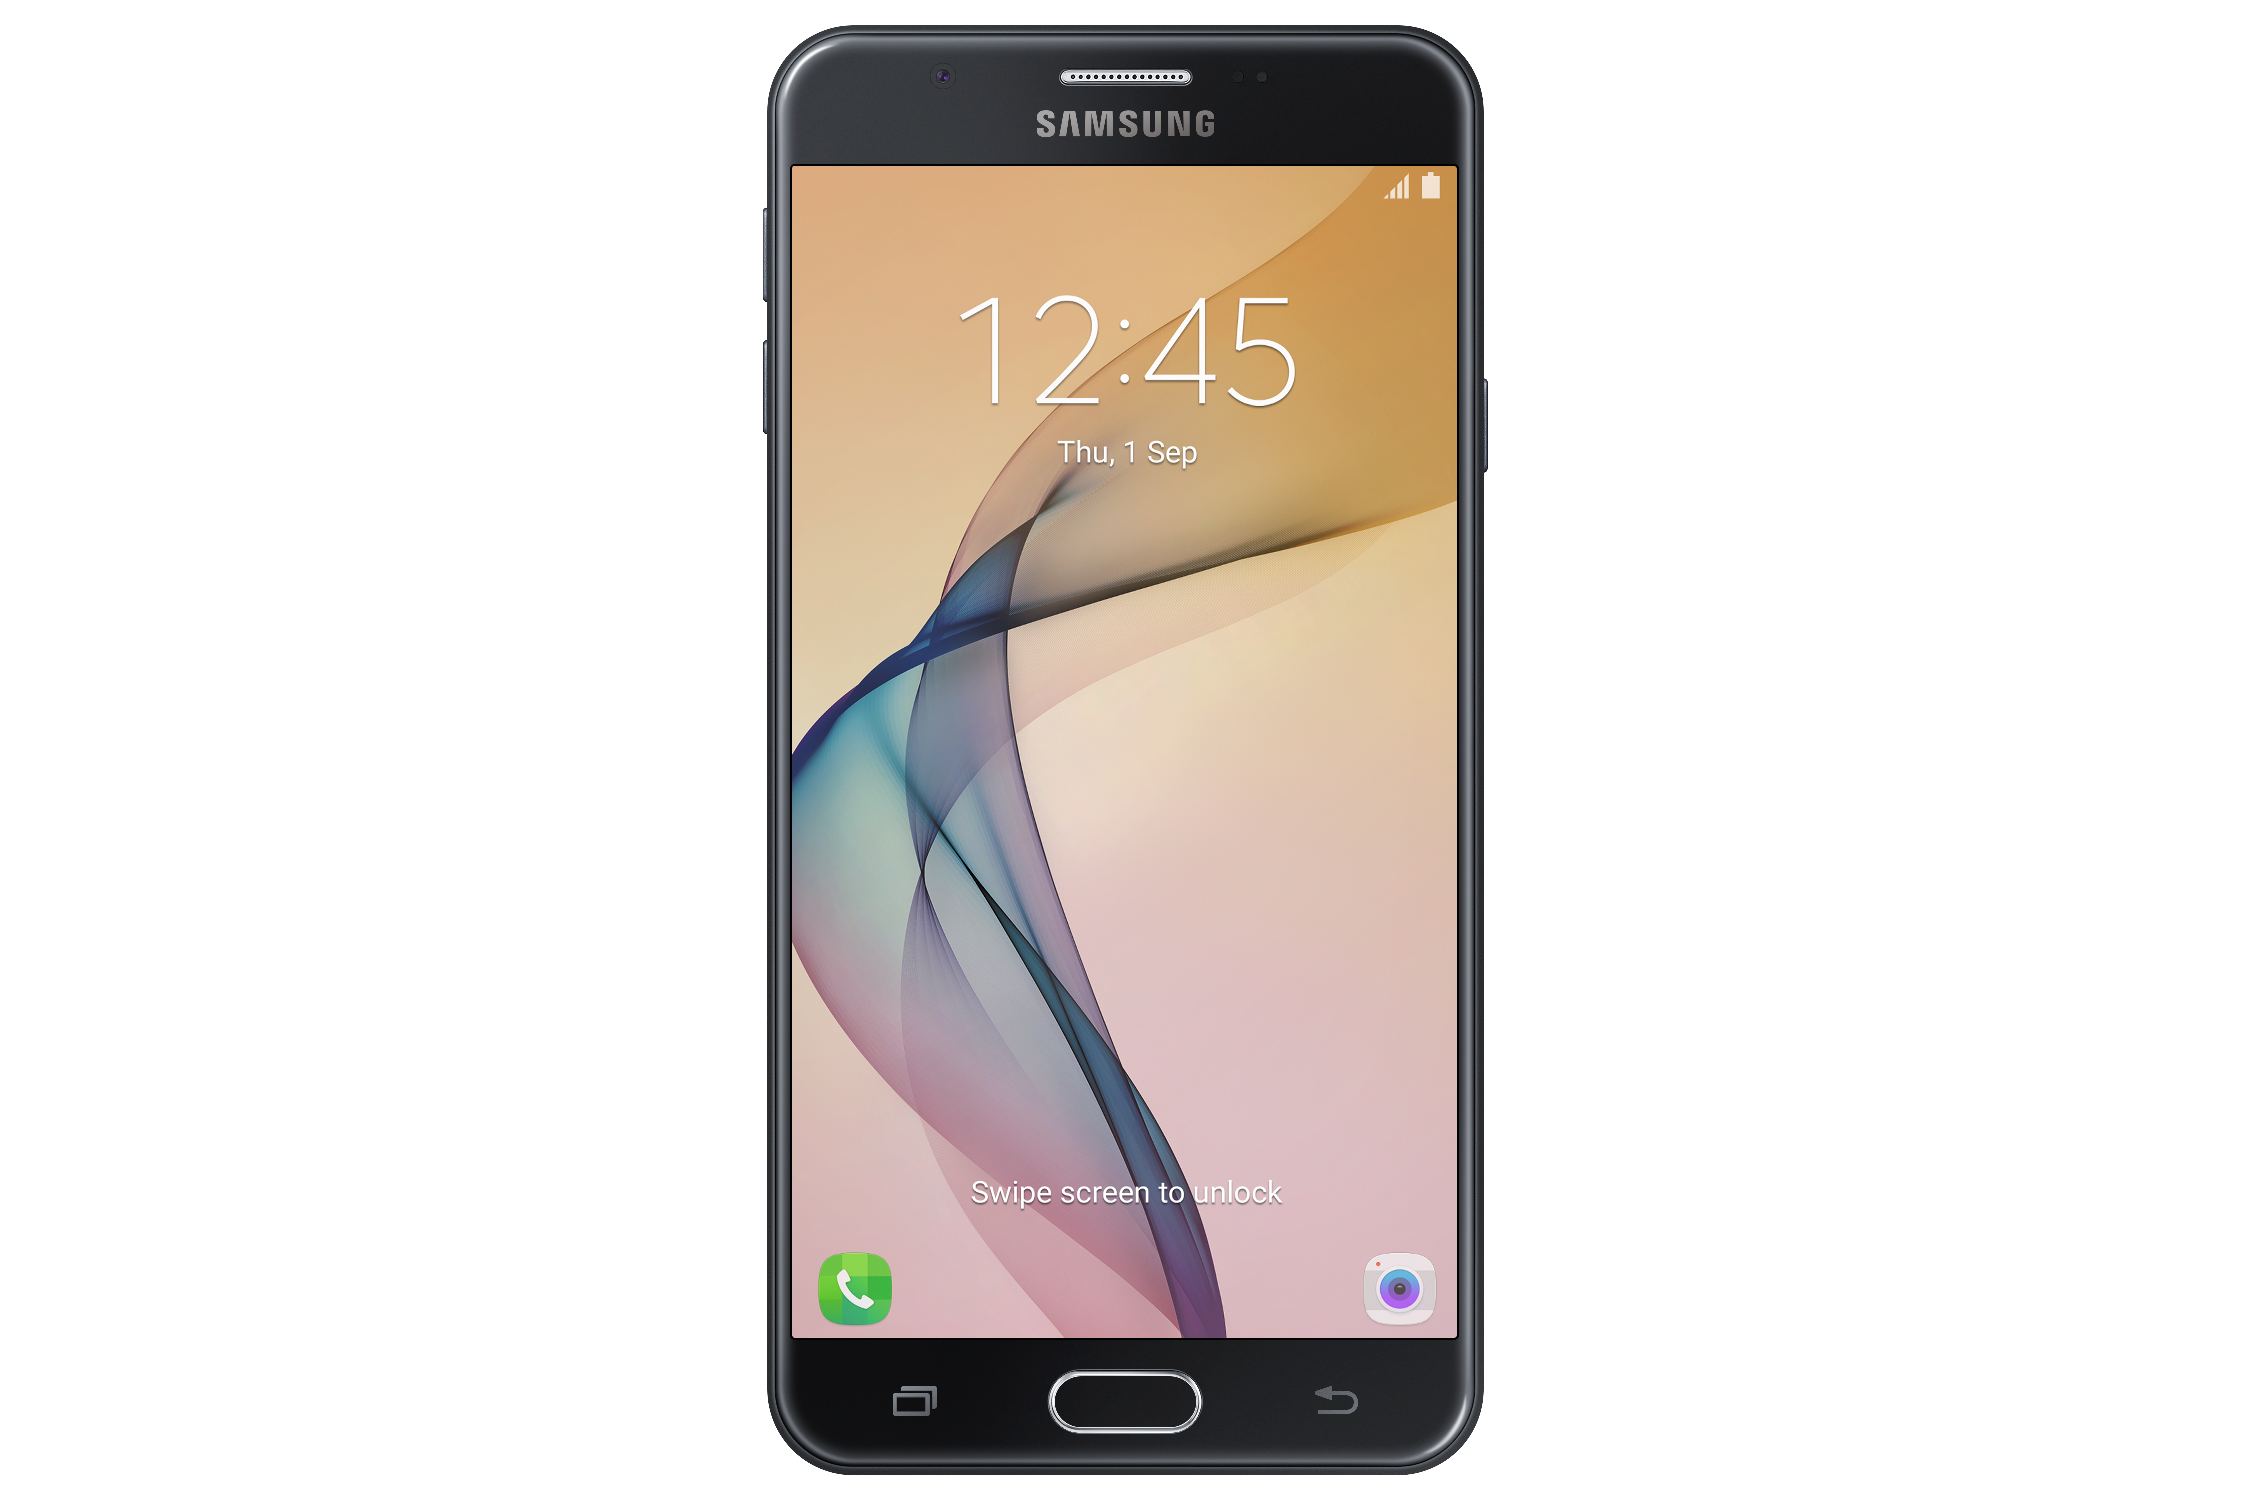 samsung galaxy phone png. mobile phone samsung galaxy png